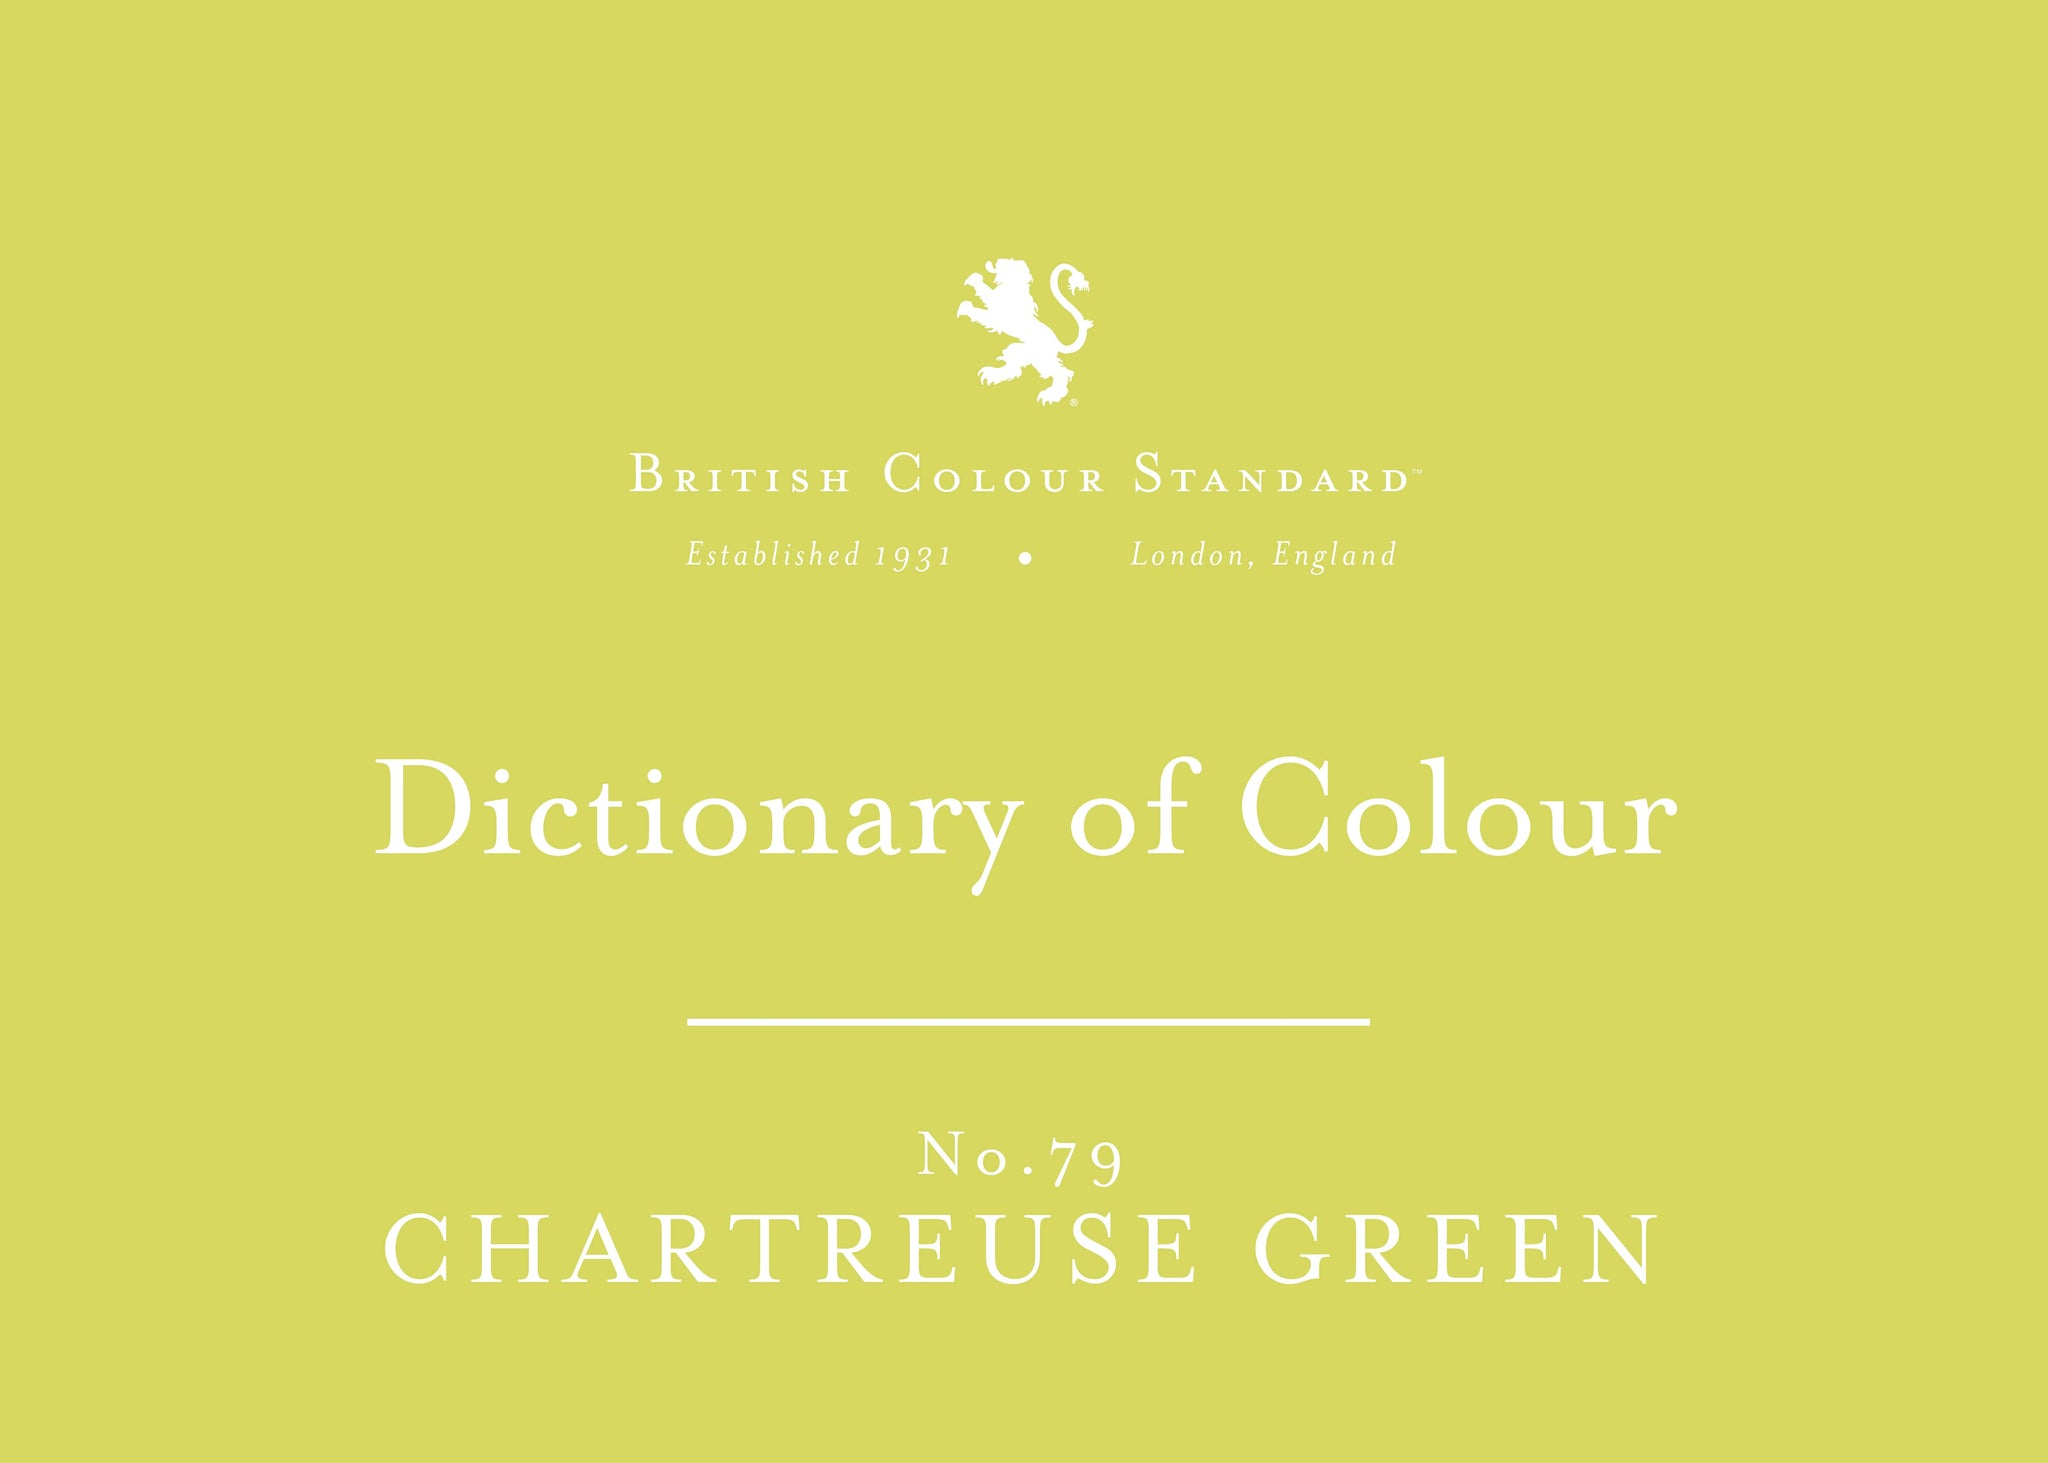 BRITISH COLOUR STANDARD - Chartreuse Green No.79